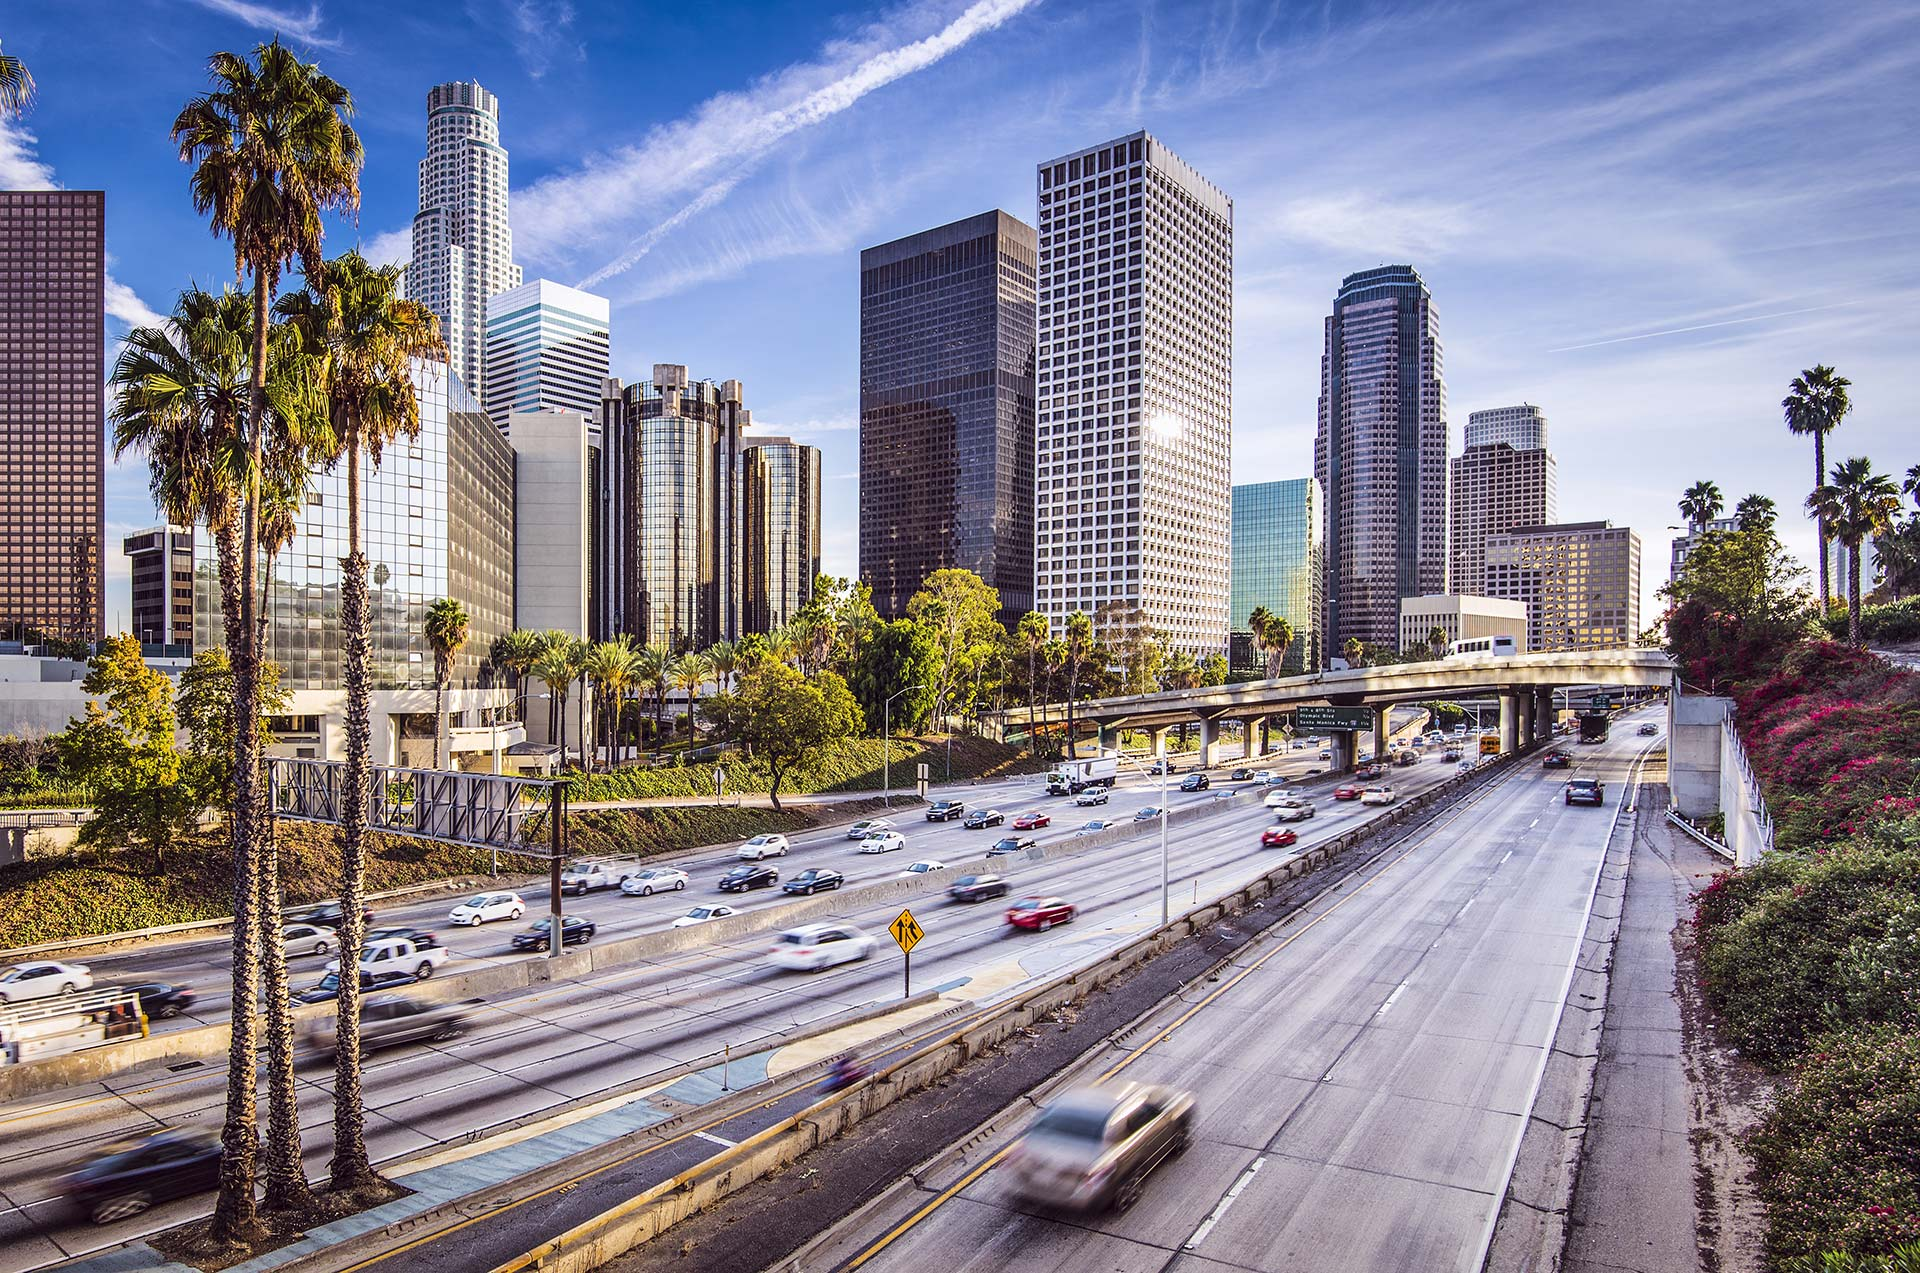 Los angeles ca united states pictures citiestips com - Los Angeles Ca United States City New Picture Virtuoso Los Angeles